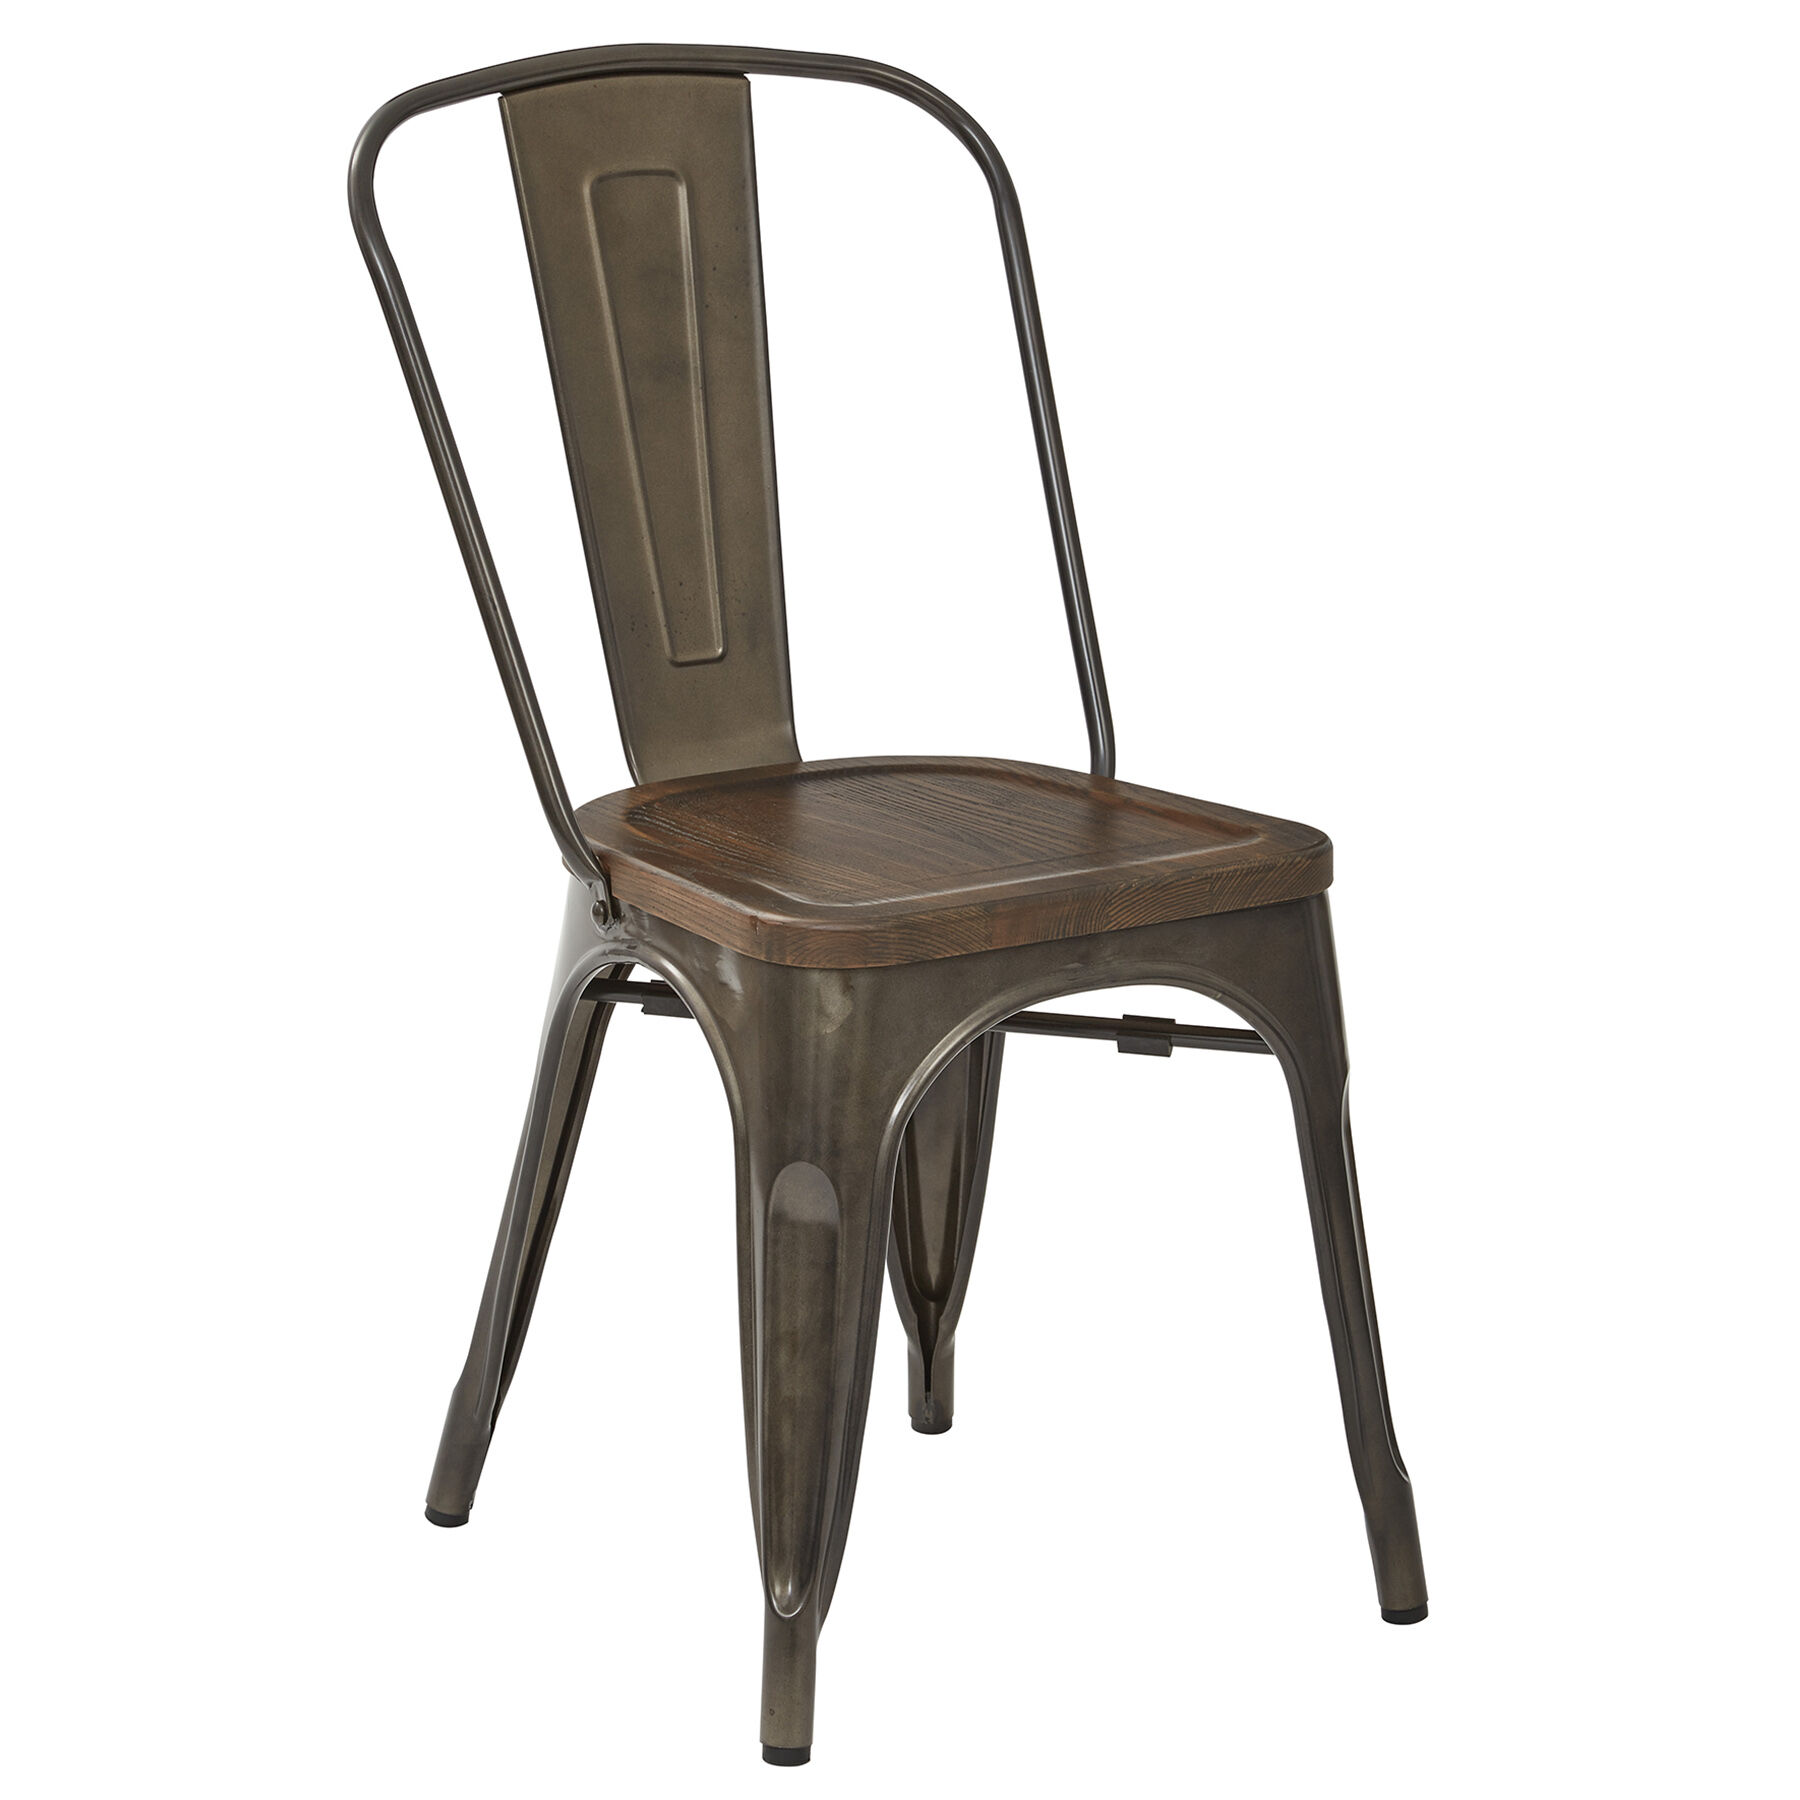 At Home Chairs Dublin Metal Dining Chair